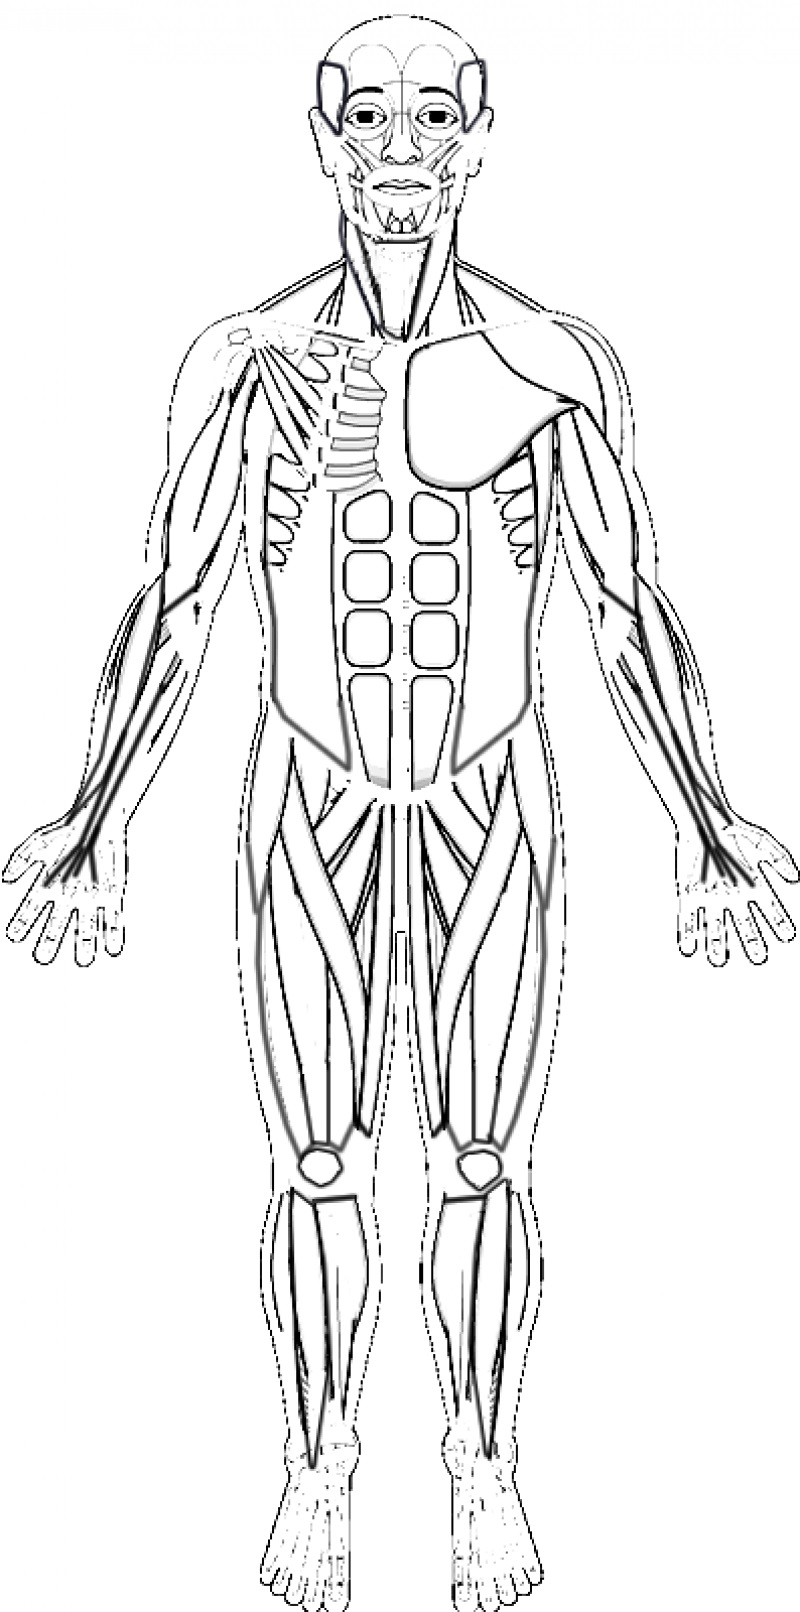 human-muscles-coloring-key-1